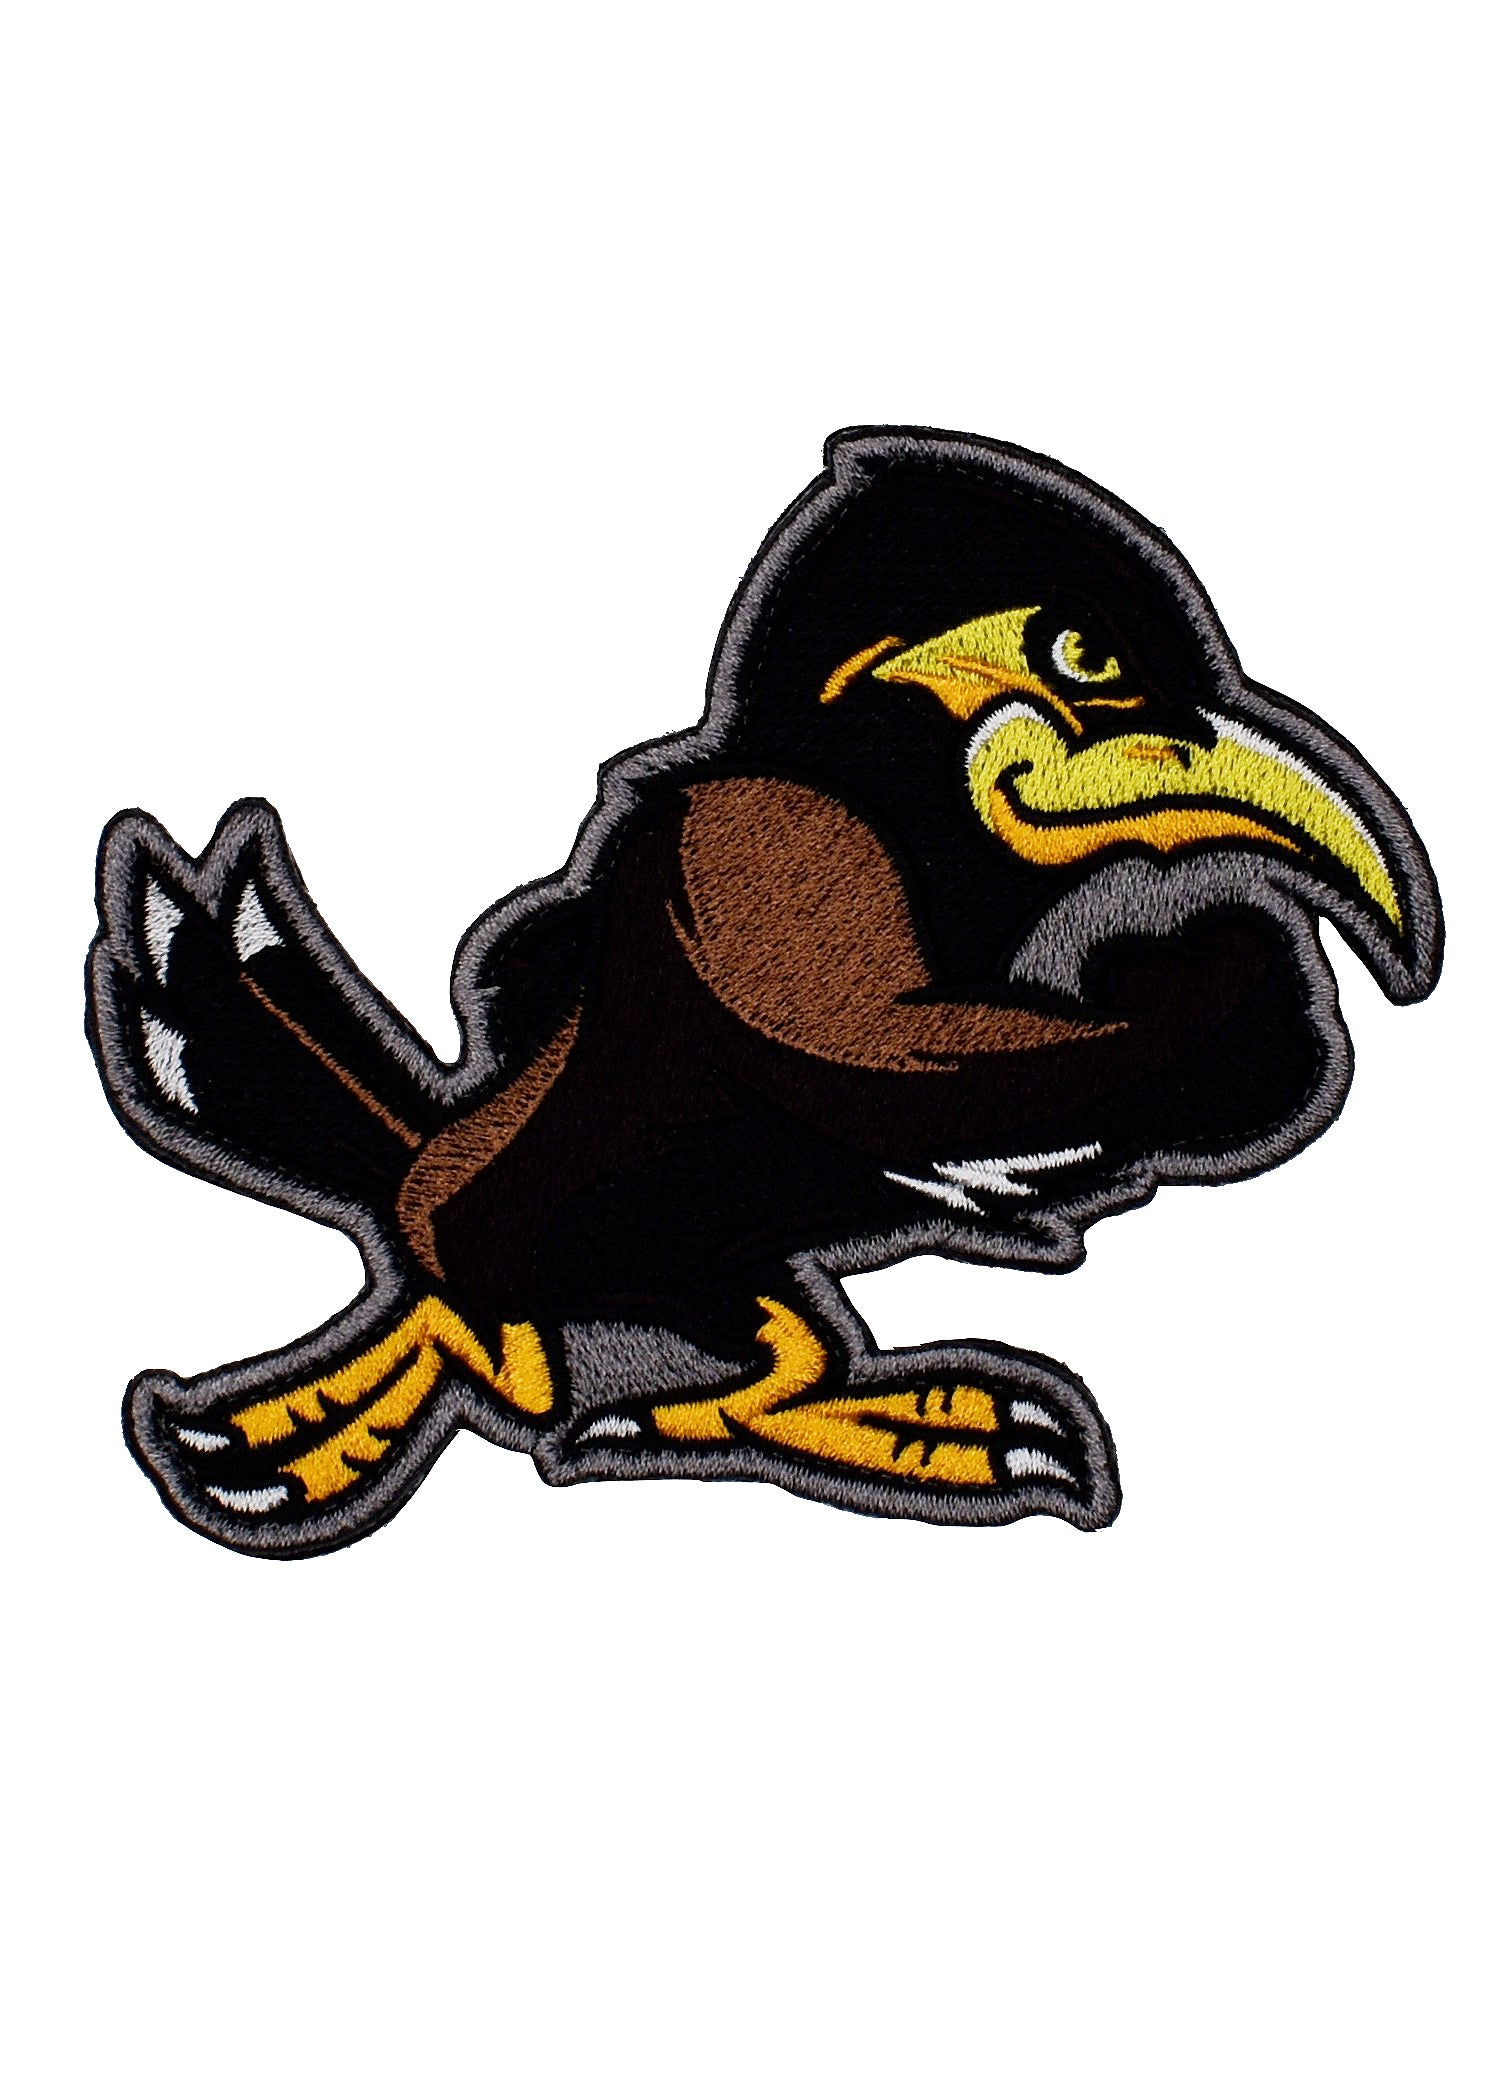 Embroidered 'Strong Like Myna' Velcro Patch